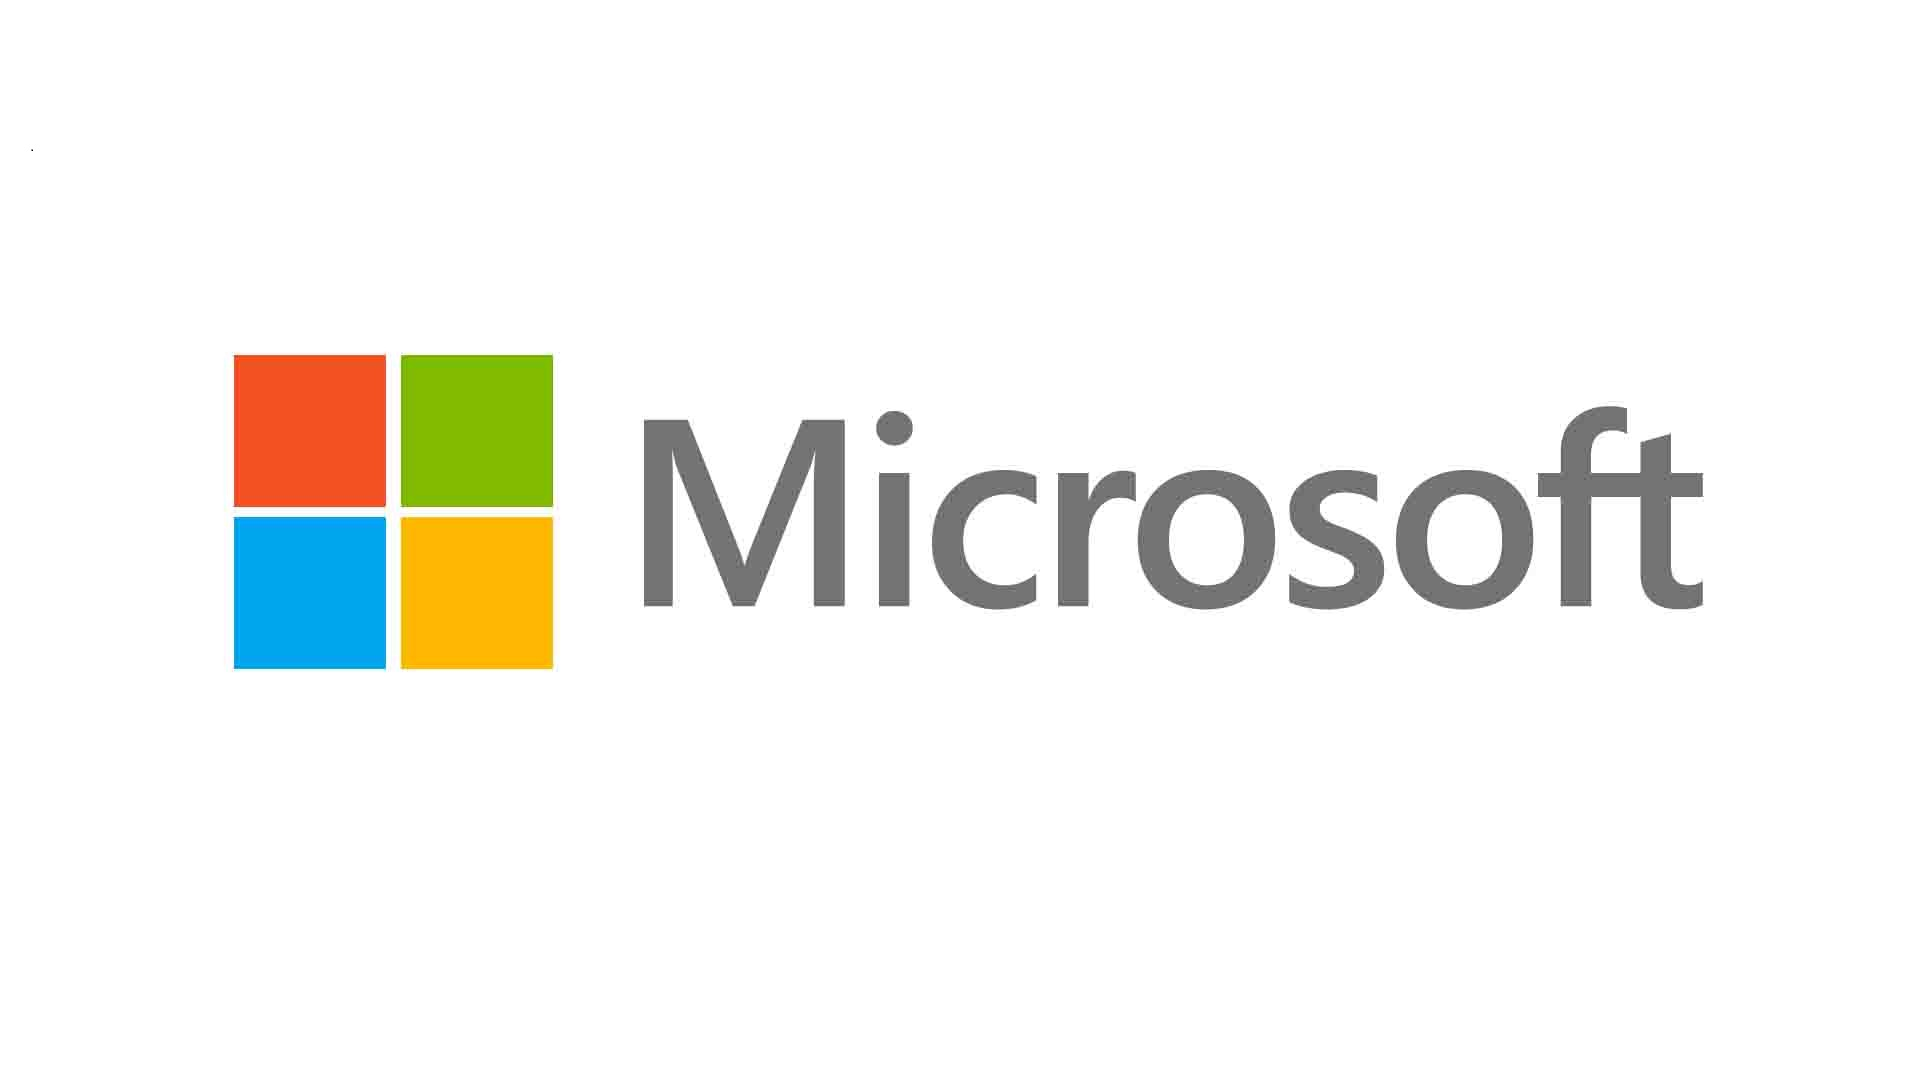 Revenue Estimates Analysis Of Microsoft Corporation (MSFT)